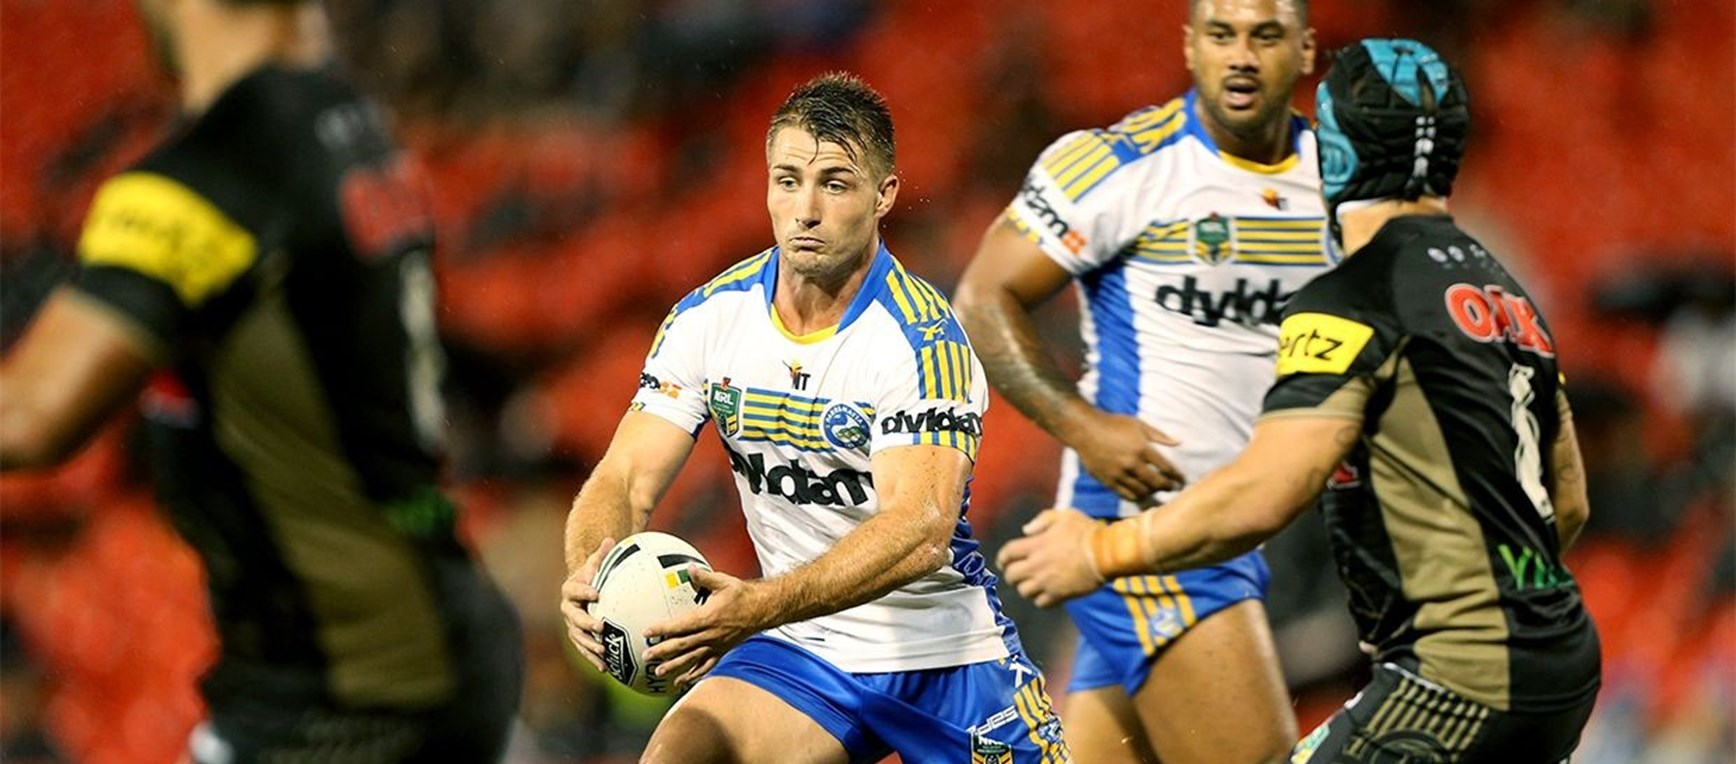 GALLERY | Eels v Penrith Trial